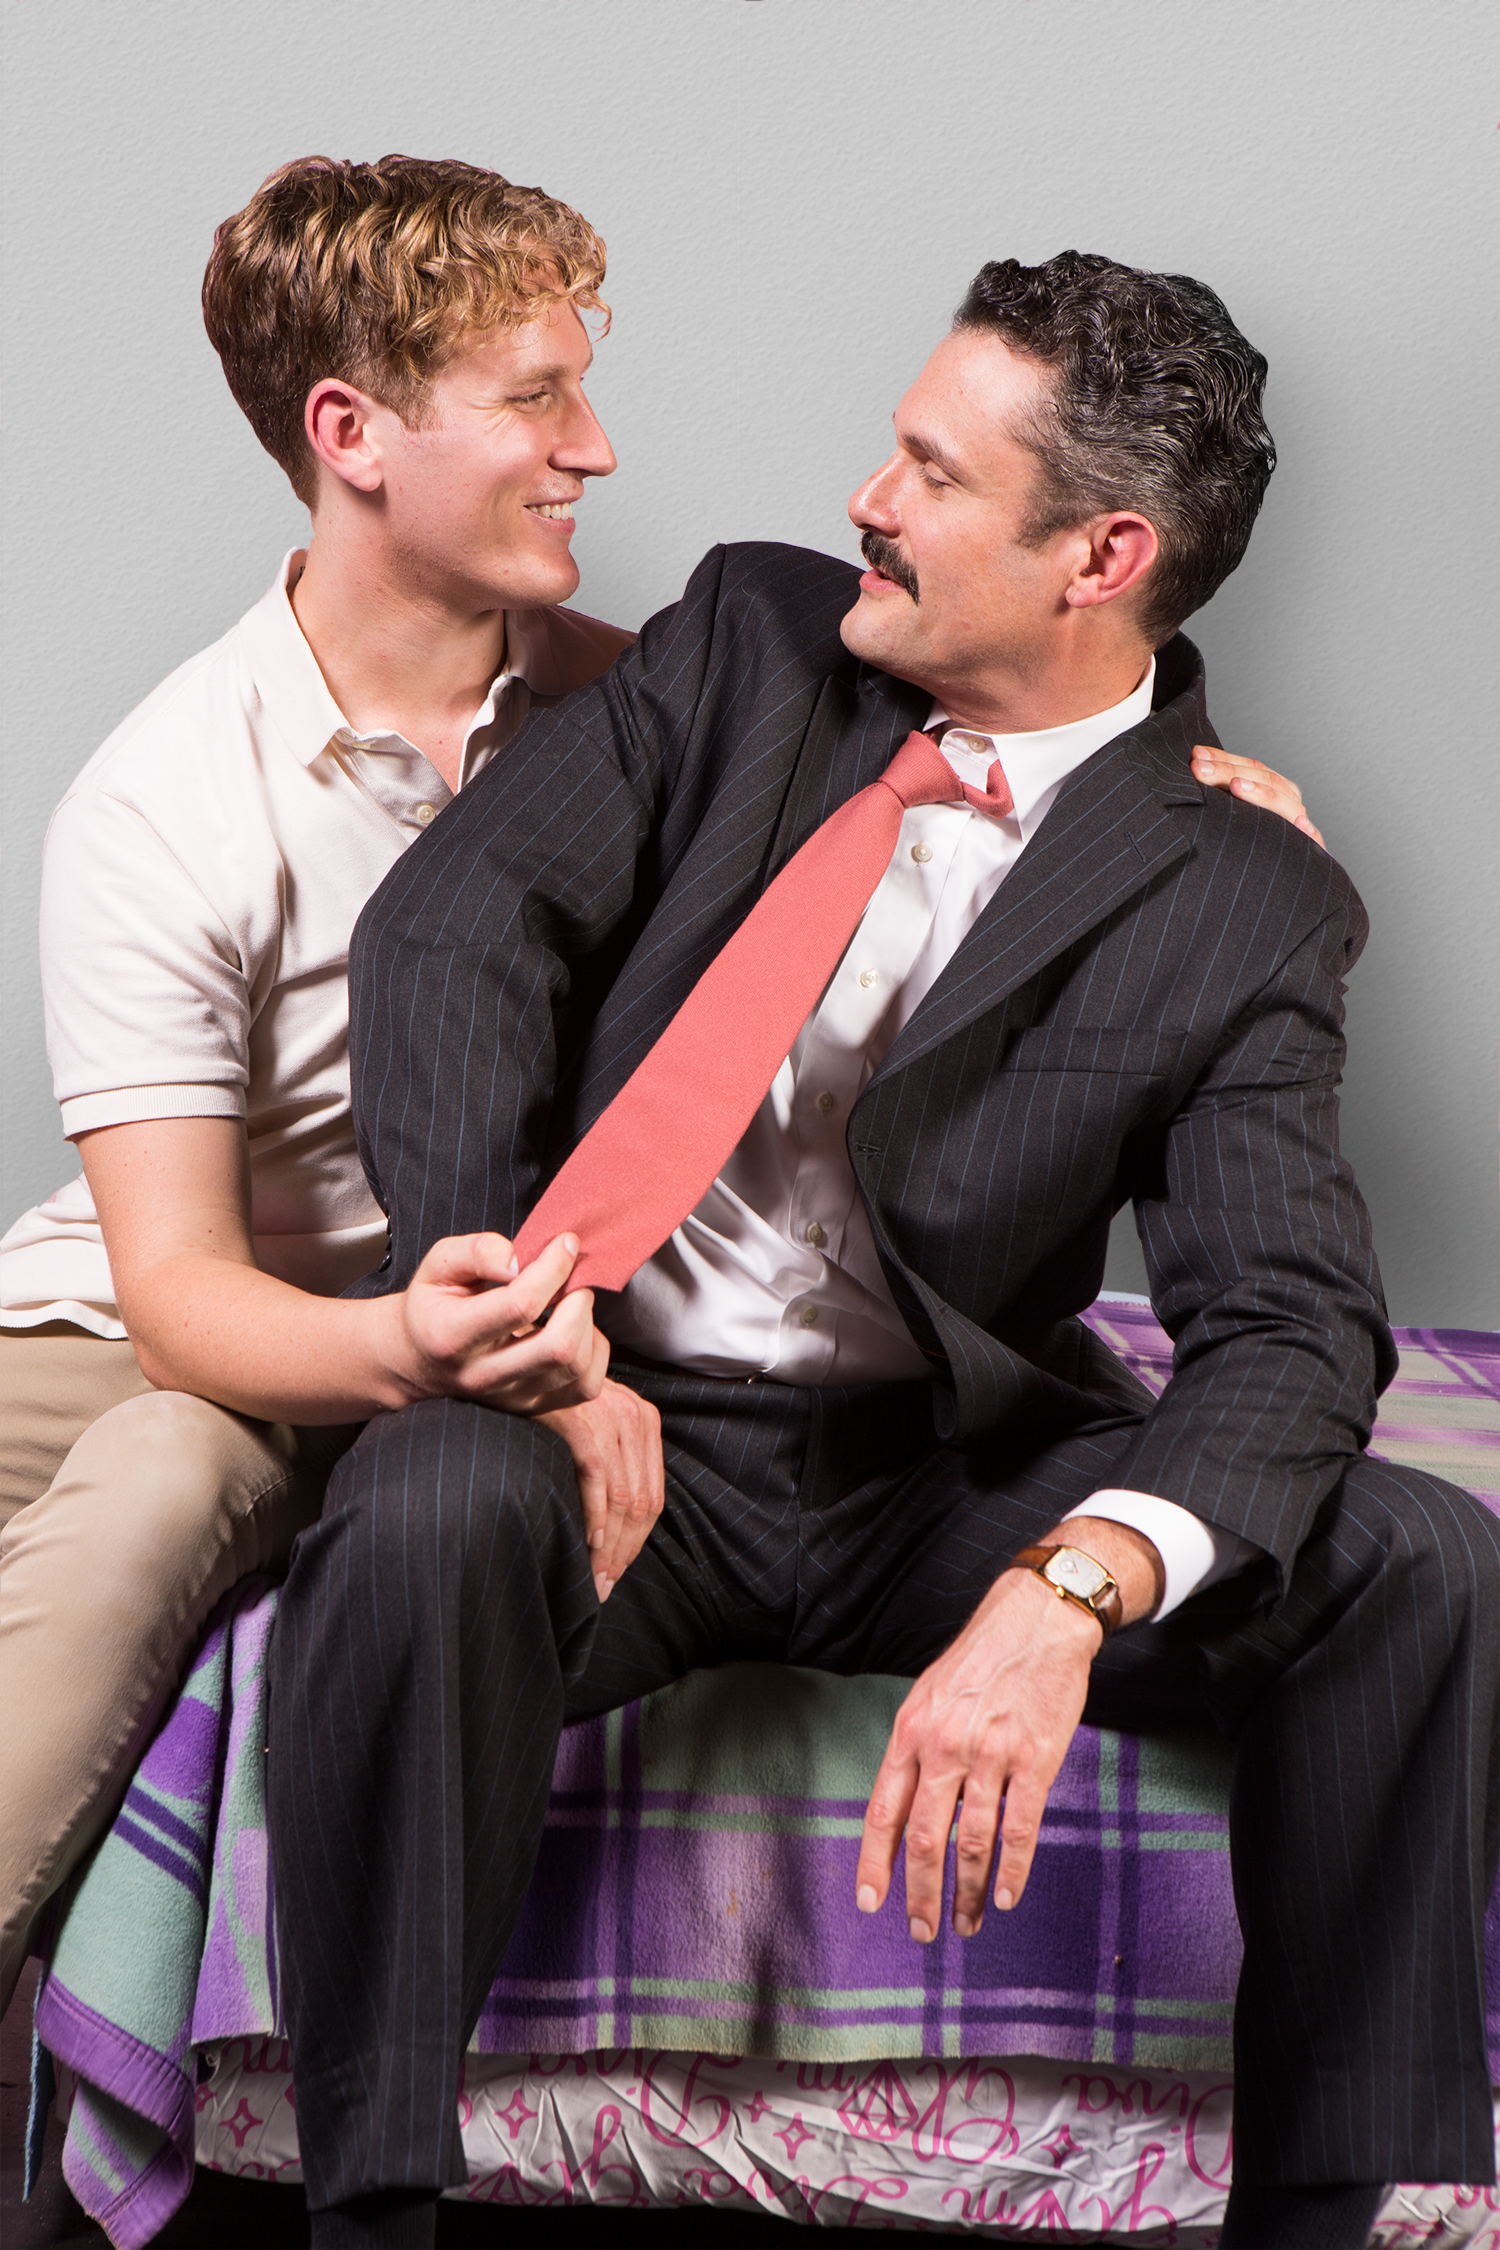 Pictured left to right: Morgan Lange as Tommy Boatwright and Benoît Monin as Bruce Niles in THE NORMAL HEART by Larry Kramer, a Theatre Rhinoceros Production at The Gateway Theatre (formerly The Eureka Theatre). Photo by David Wilson.